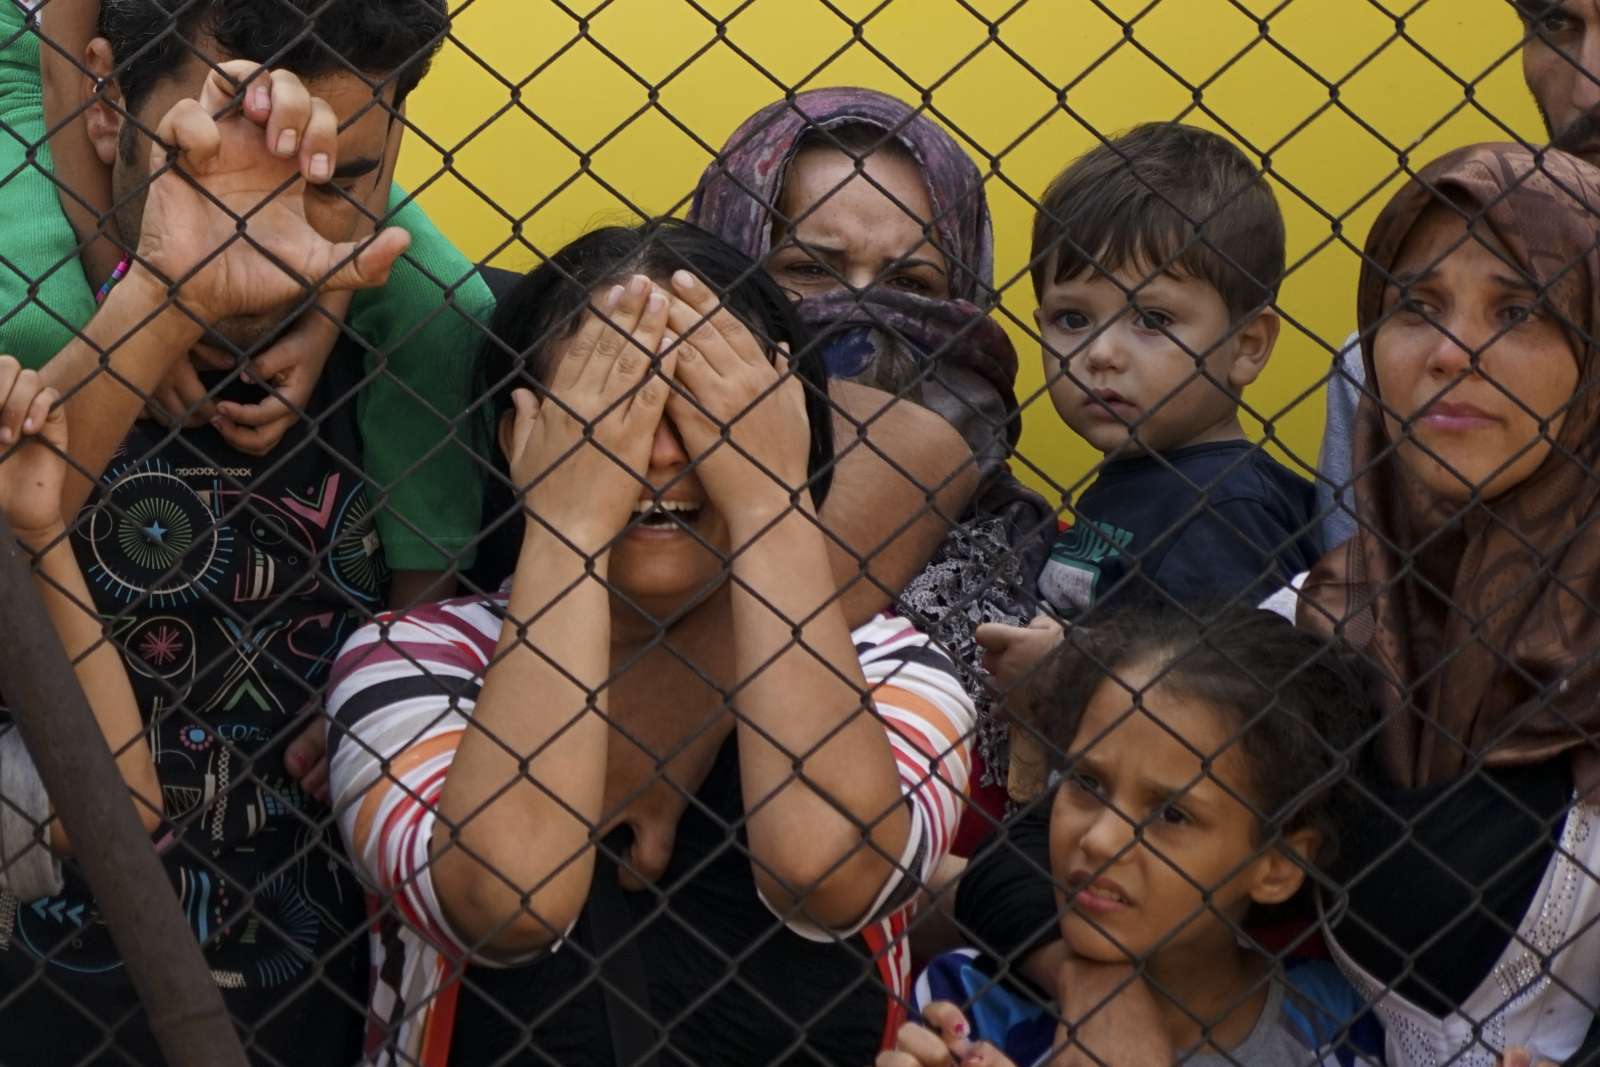 women_and_children_among_syrian_refugees_striking_at_the_platform_of_budapest_keleti_railway_station._refugee_crisis_2